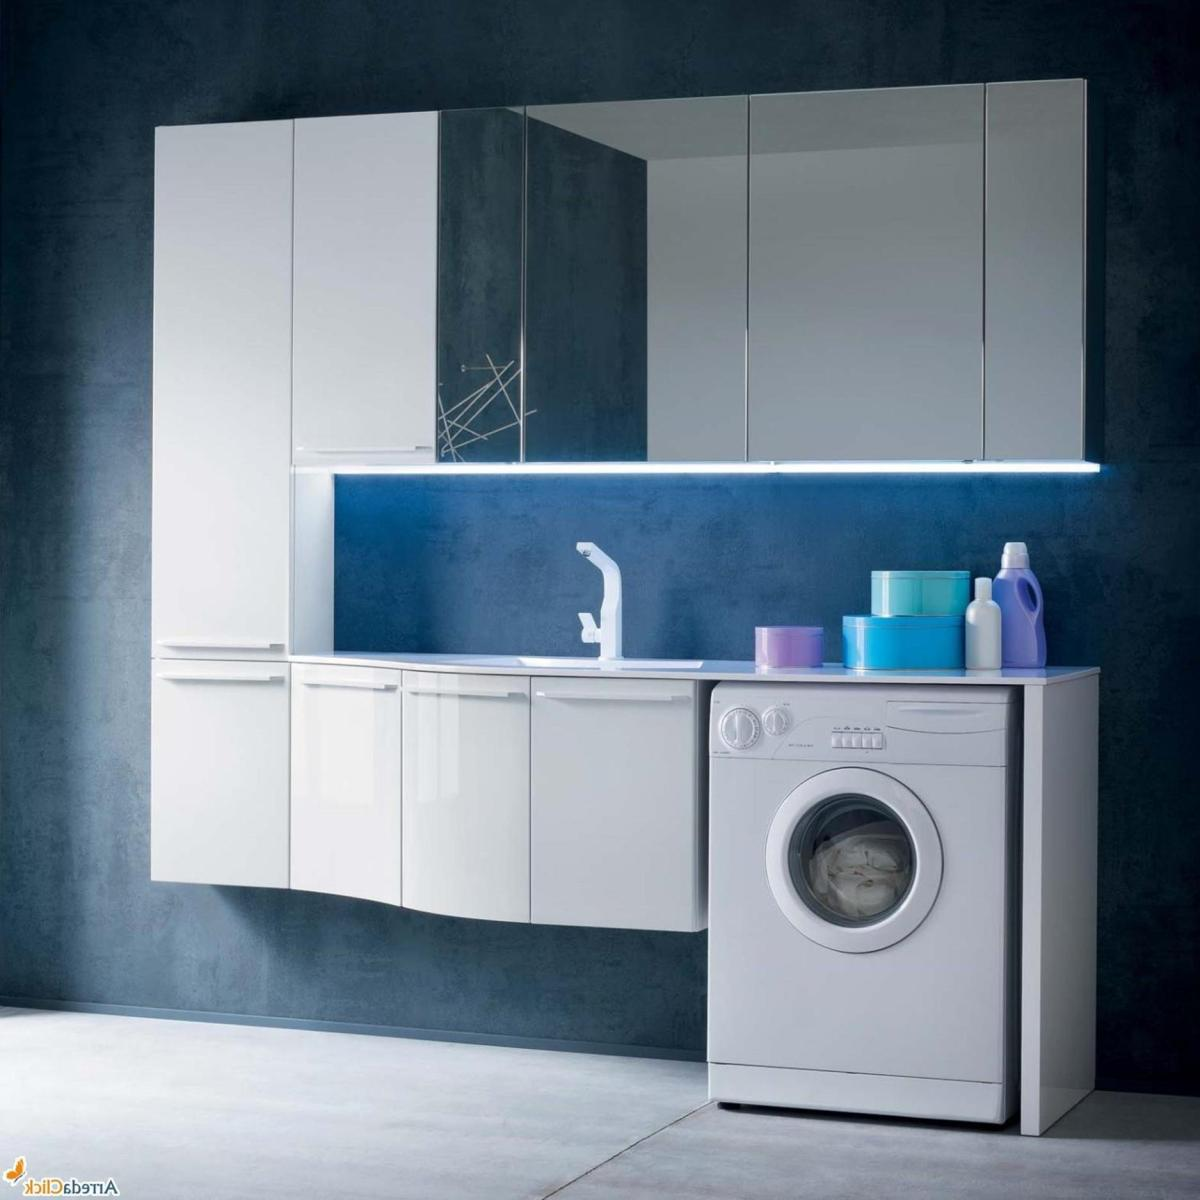 Best Cheap IKEA Cabinets Laundry Room Storage Ideas 27